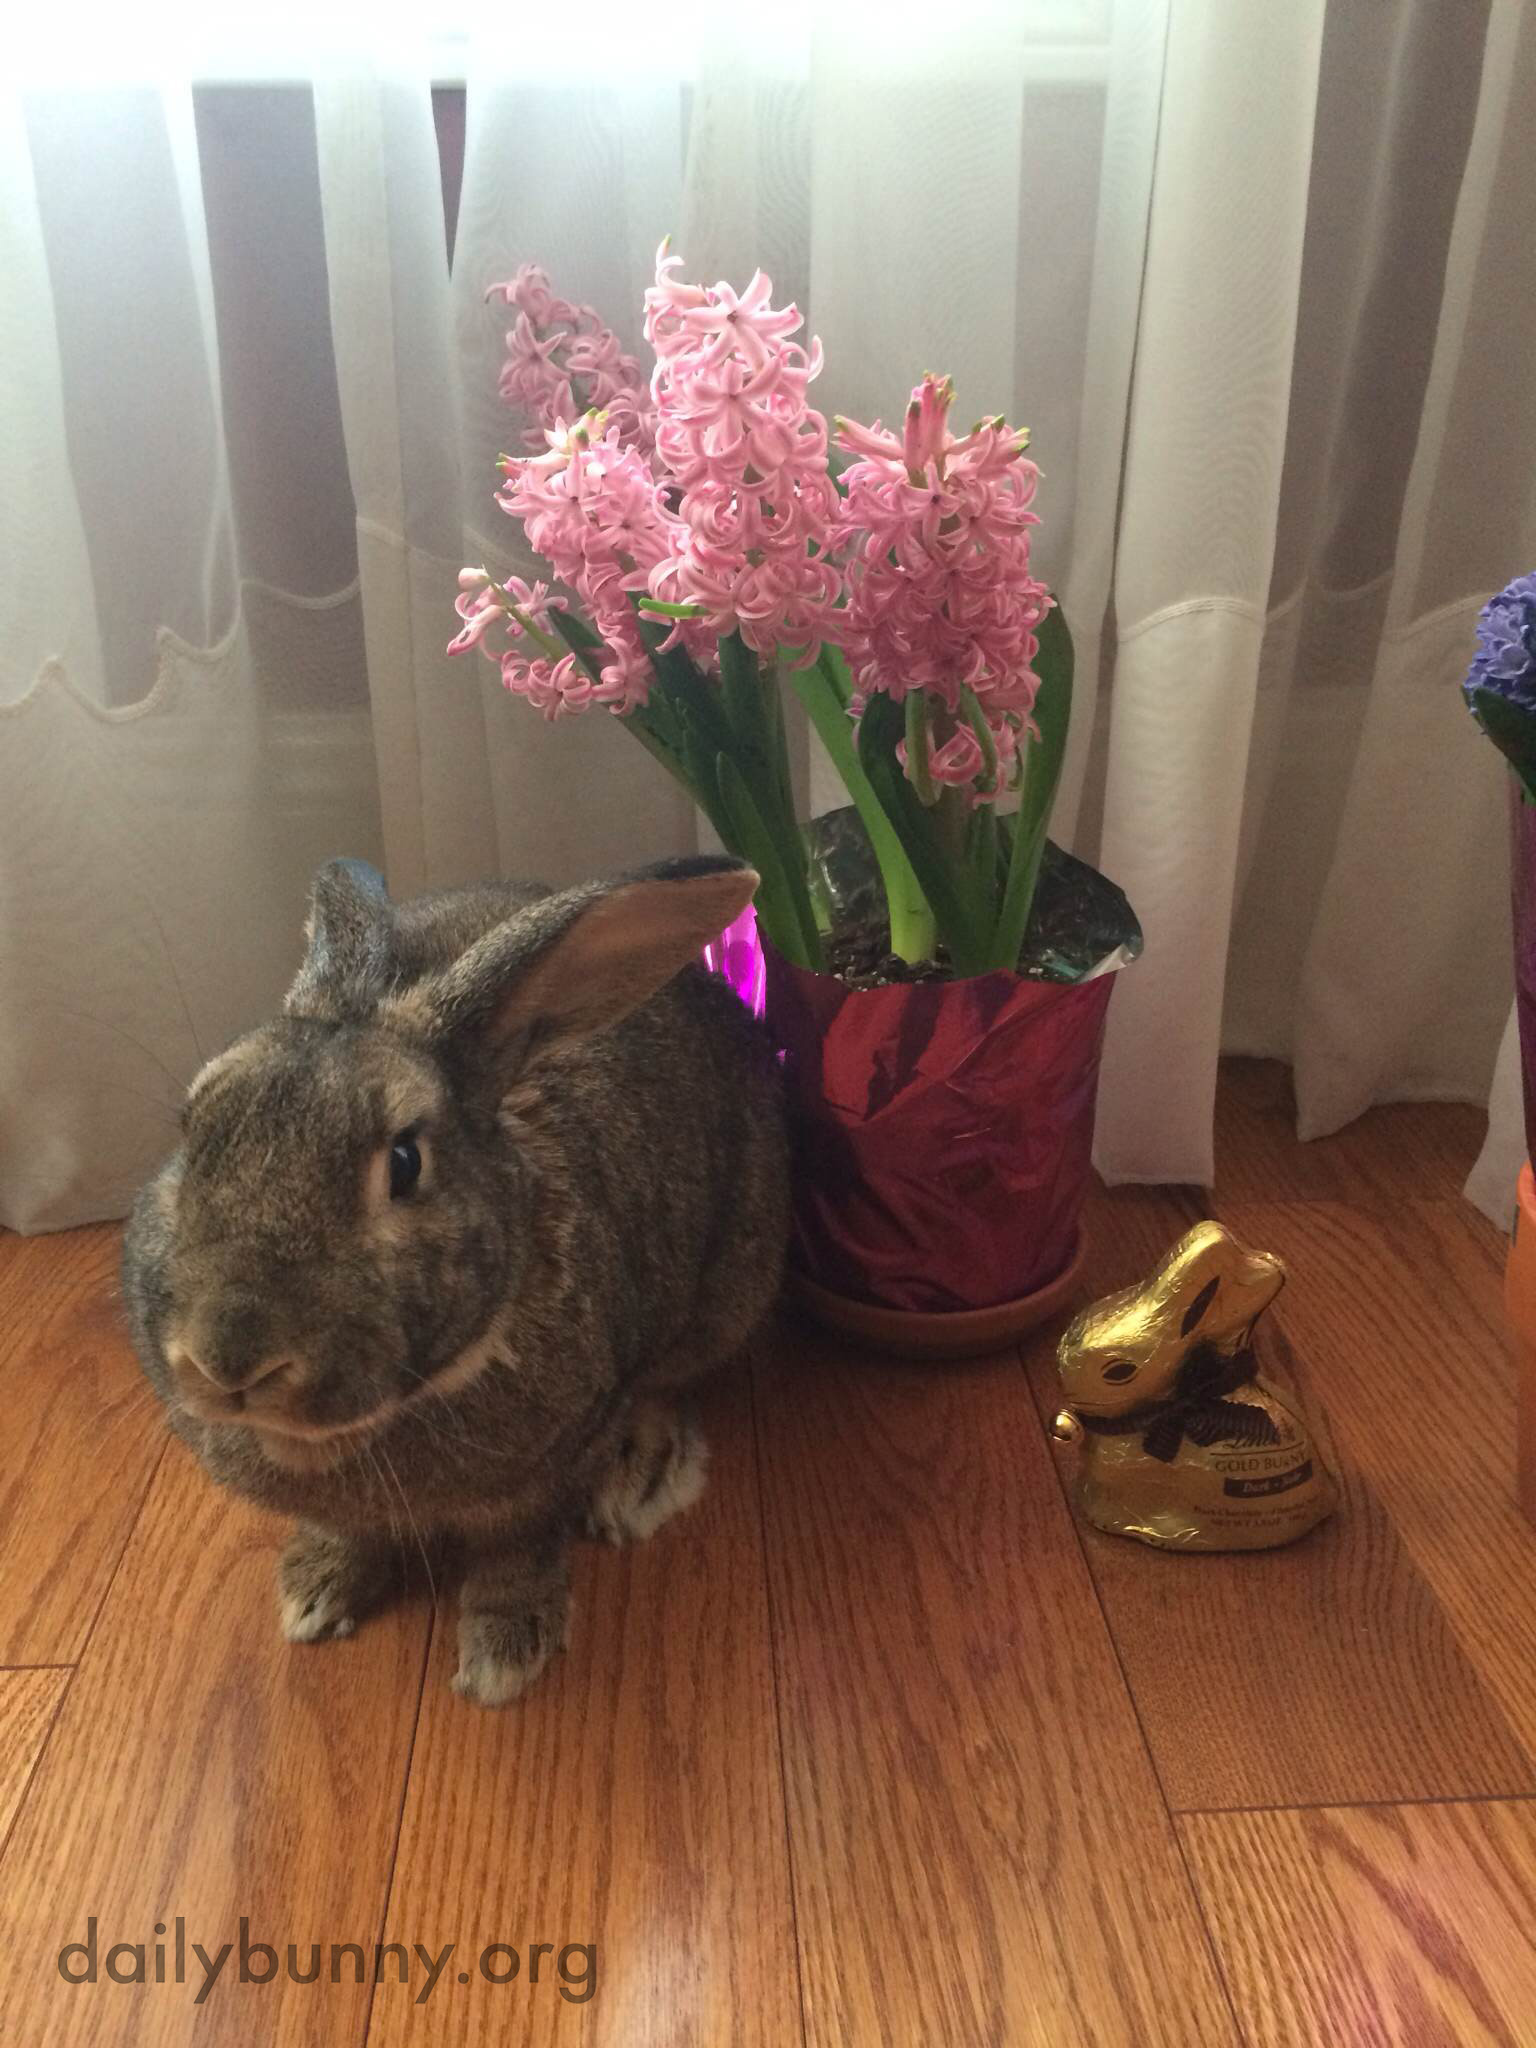 The Daily Bunny's Easter 2014 Mega-Post! 5